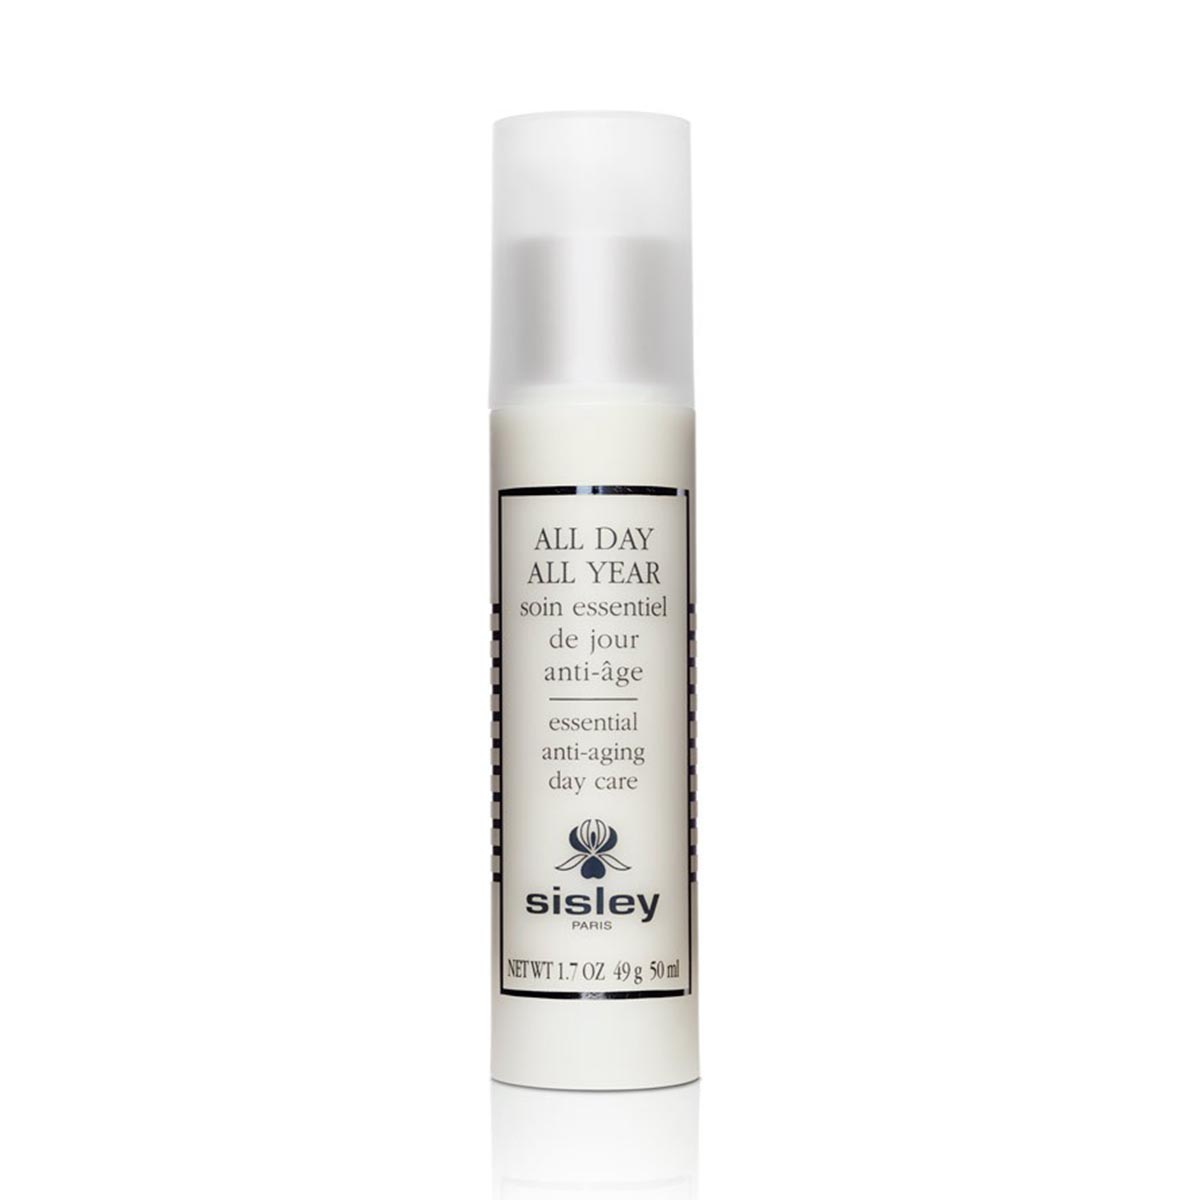 Sisley all day all year soin essentiel de jour anti age 50ml